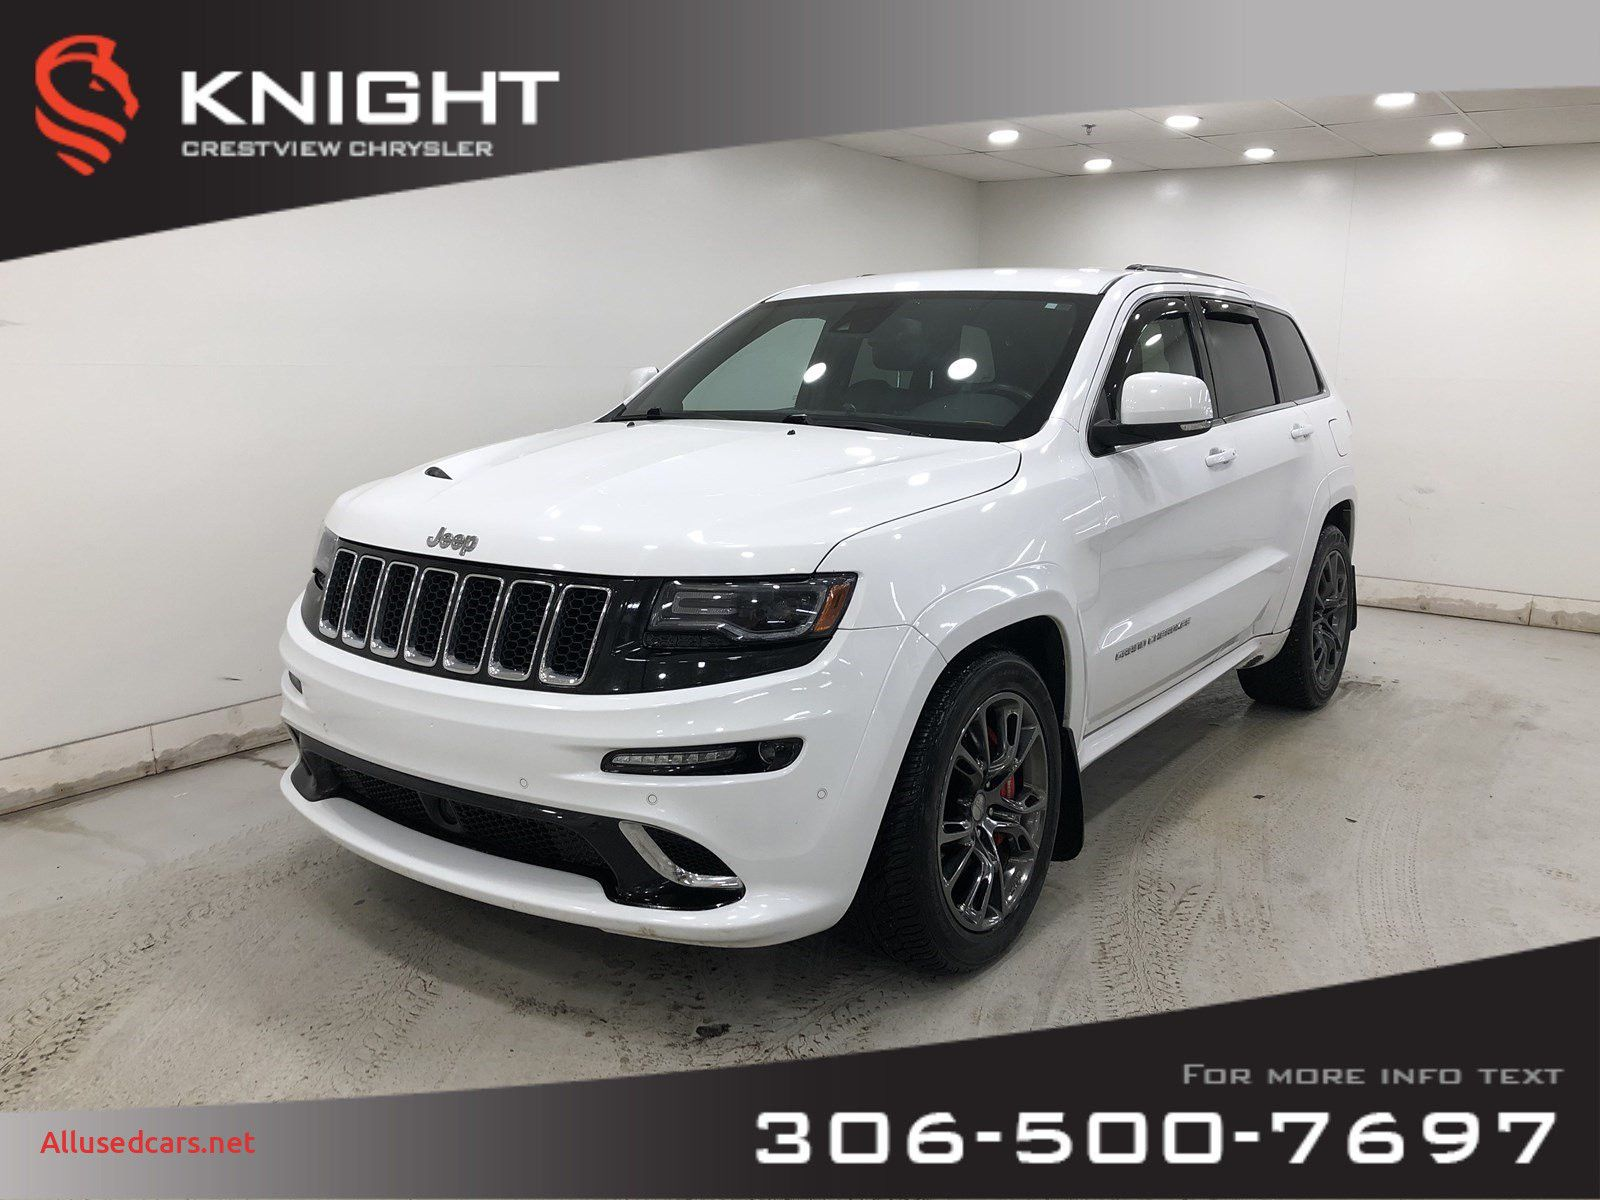 Jeep Srt8 For Sale Best Of Pre Owned 2014 Jeep Grand Cherokee Srt8 4wd Sport Utility Jeep Srt8 2014 Jeep Grand Cherokee Jeep Grand